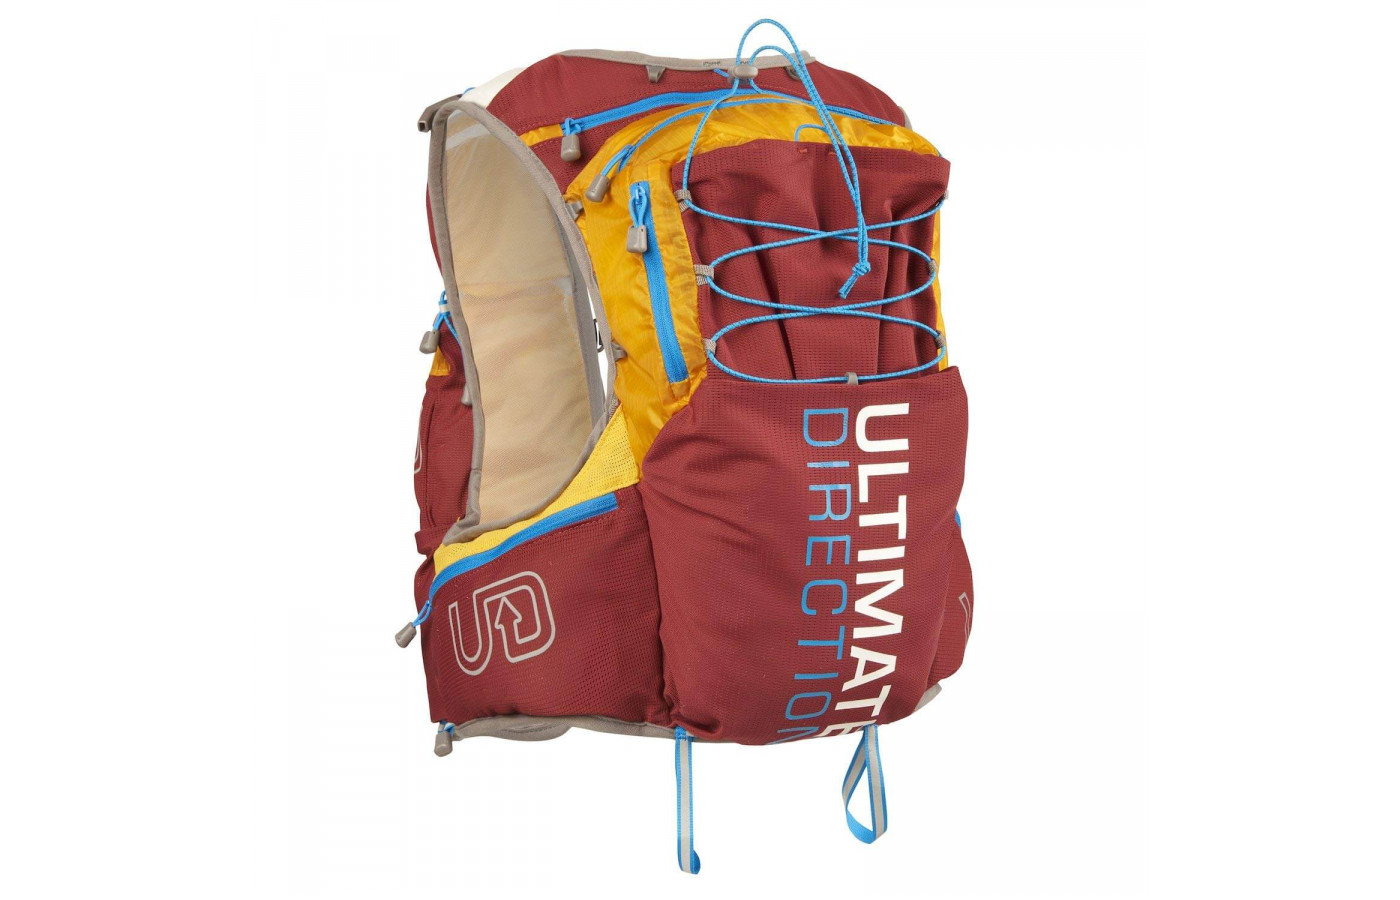 The Ultimate Direction PB Adventure Vest 3.0 can accommodate a bladder of up to 2L